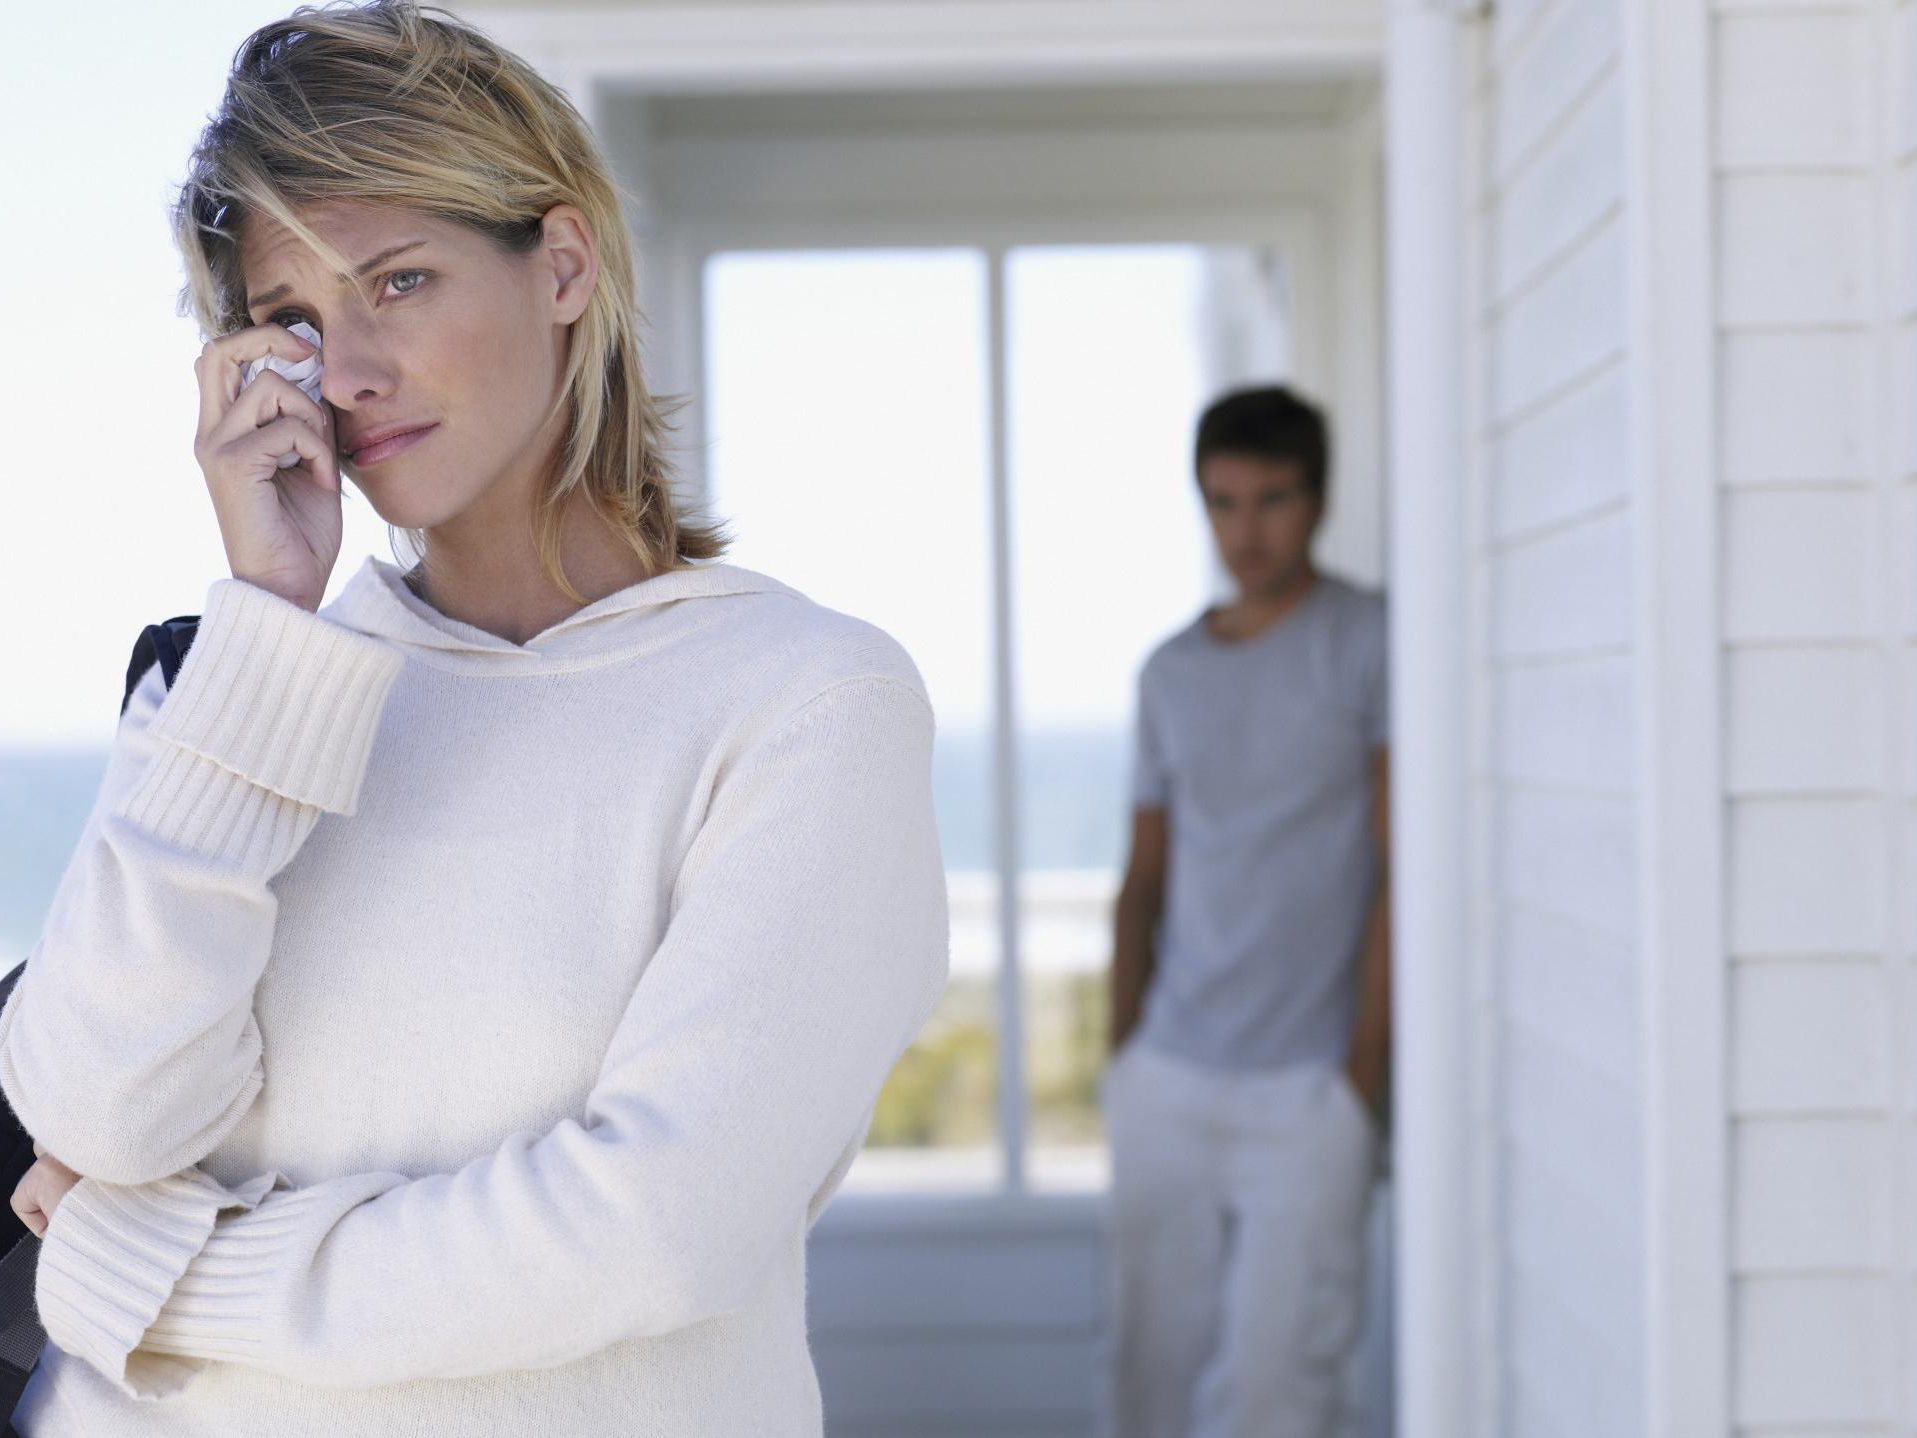 Tips for Men Whose Partner Has Had a Miscarriage